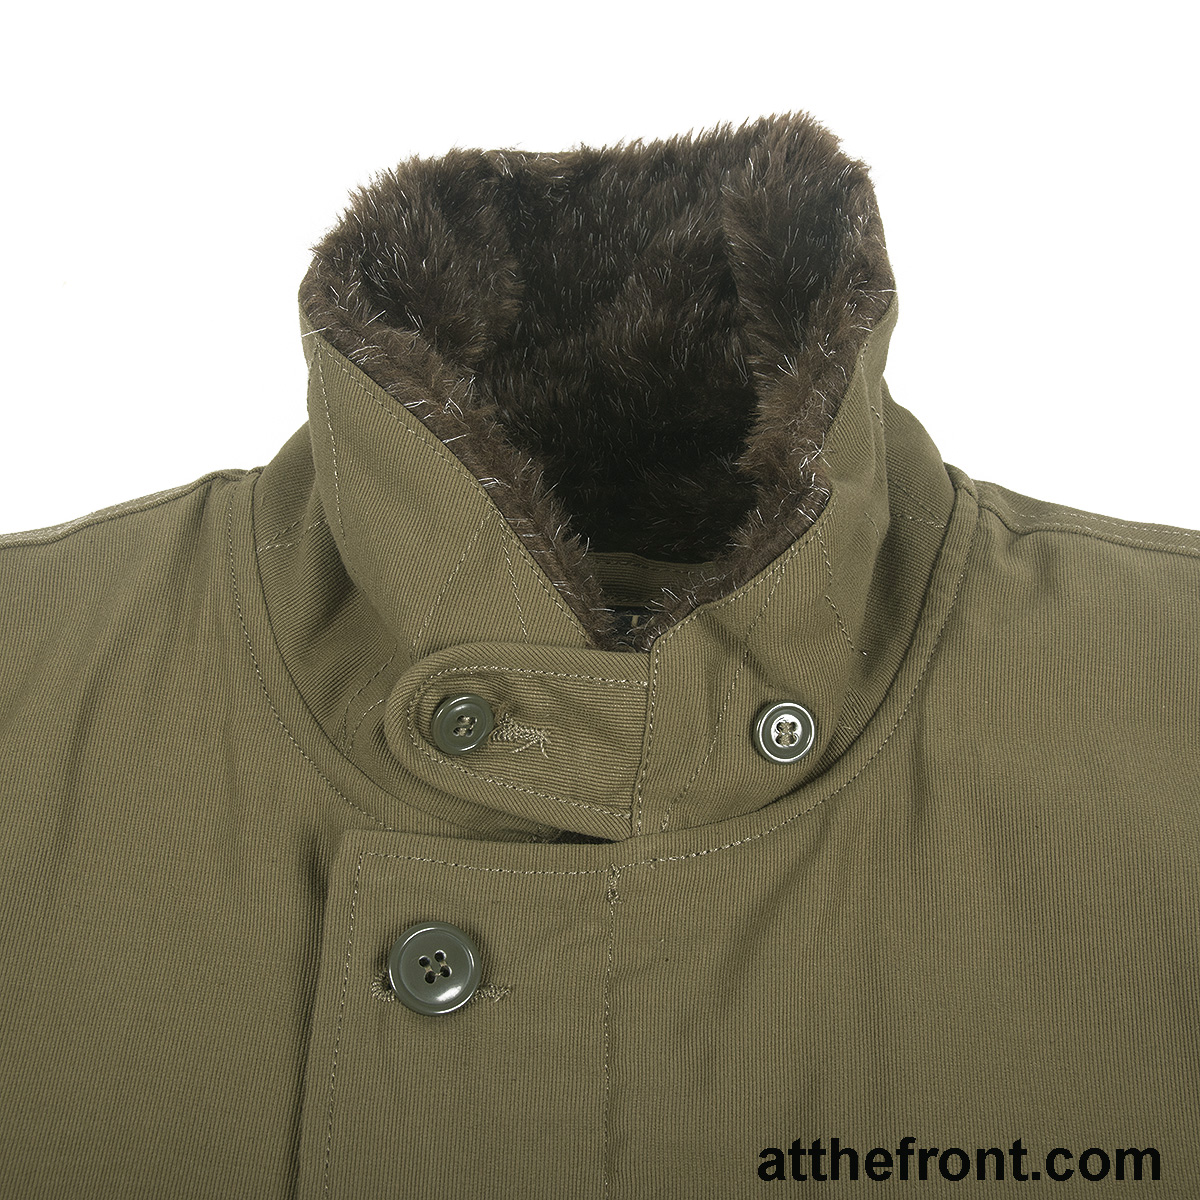 12243c378b6 Reproduction of the iconic WWII Navy N1 Deck Jacket. Like all of our  uniforms